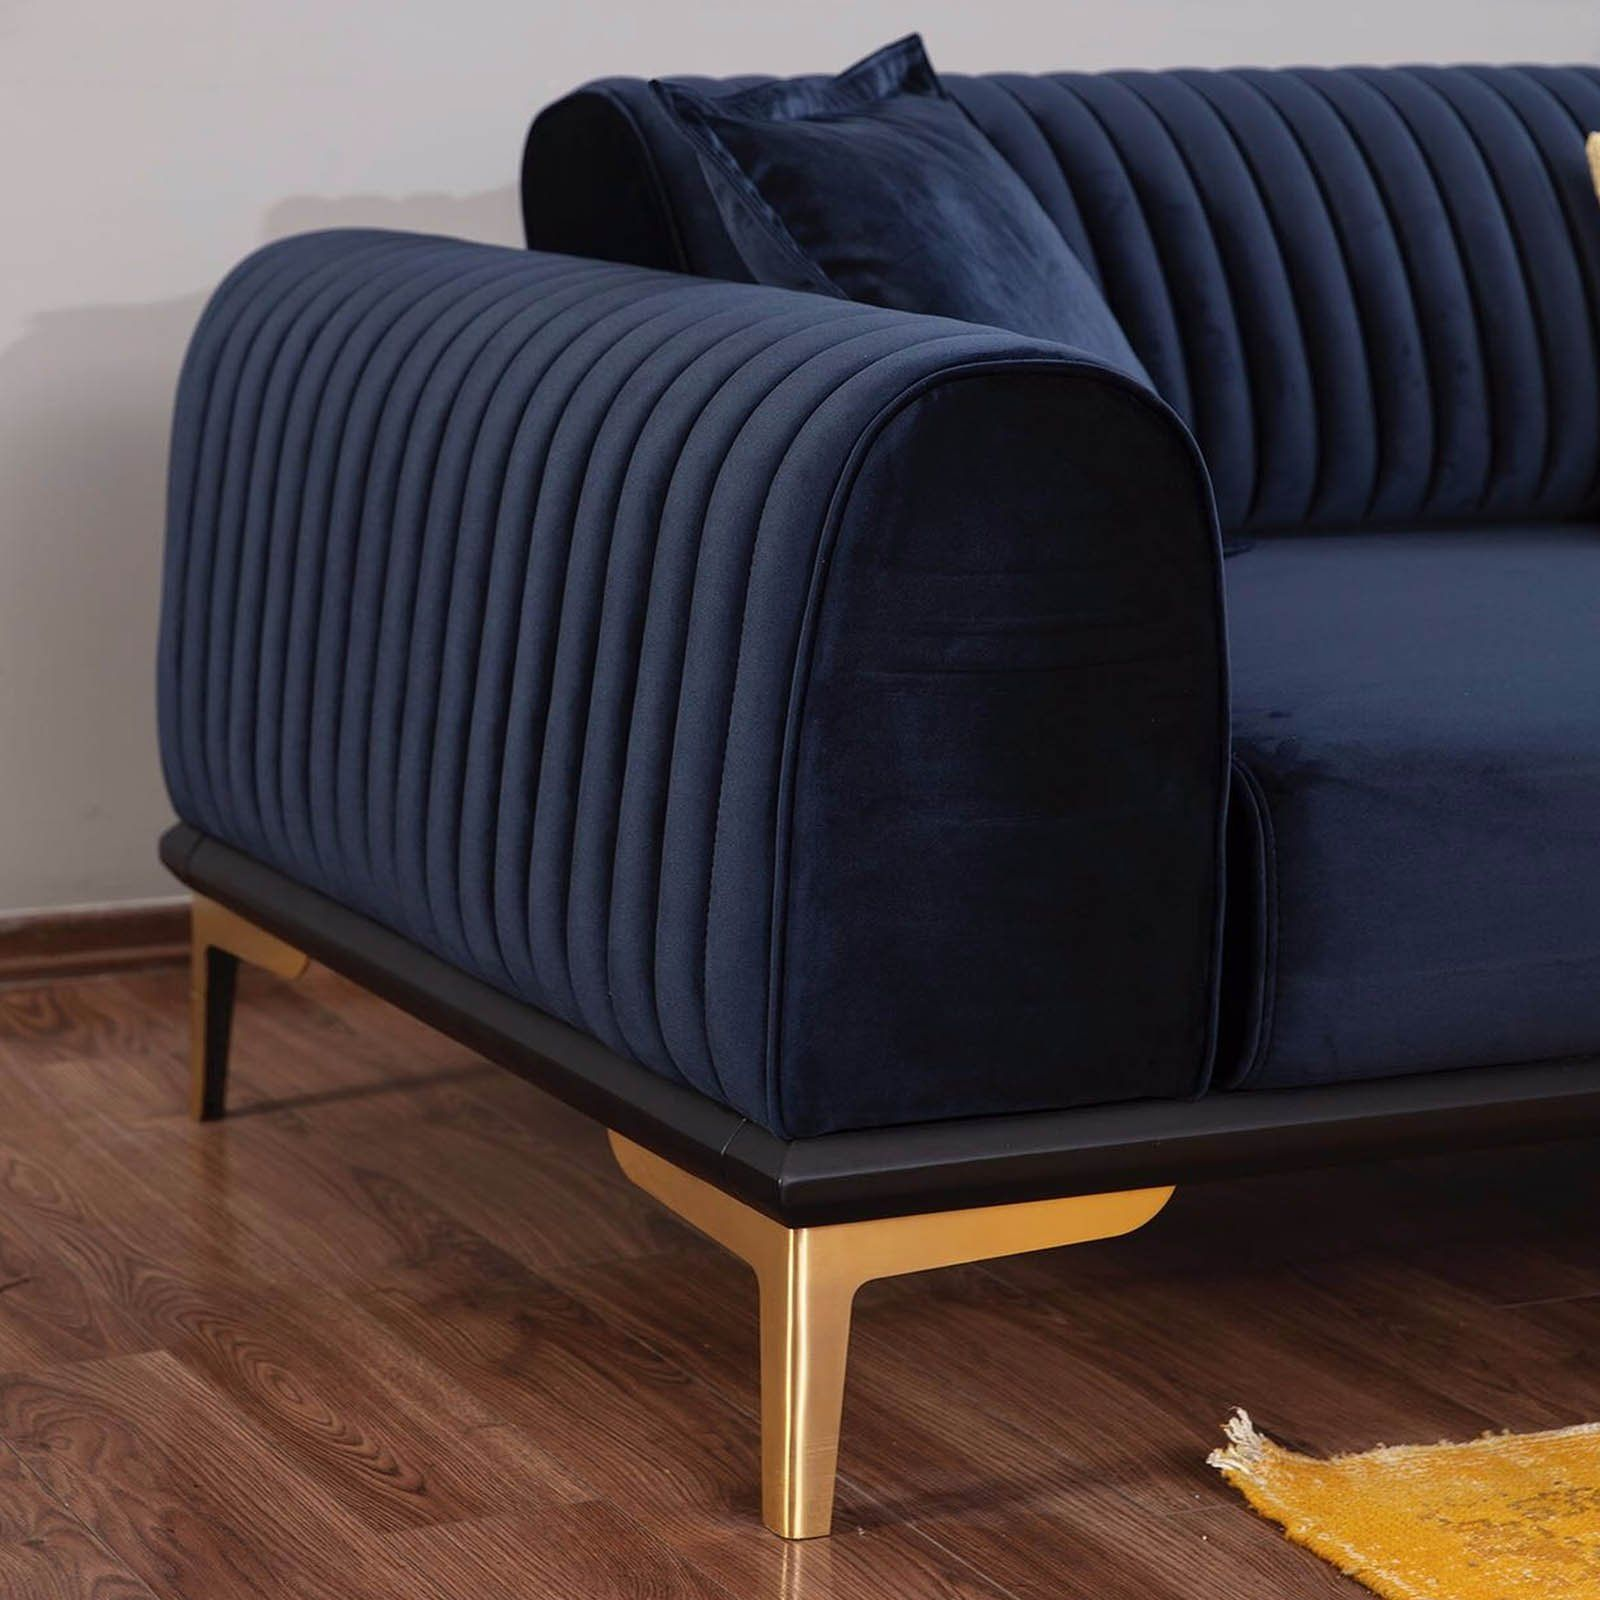 Nirvana 3 Seater Sofa Bed Nirv003 Blue With Images Living Room Sofa 3 Seater Sofa Bed Living Room Sofa Design